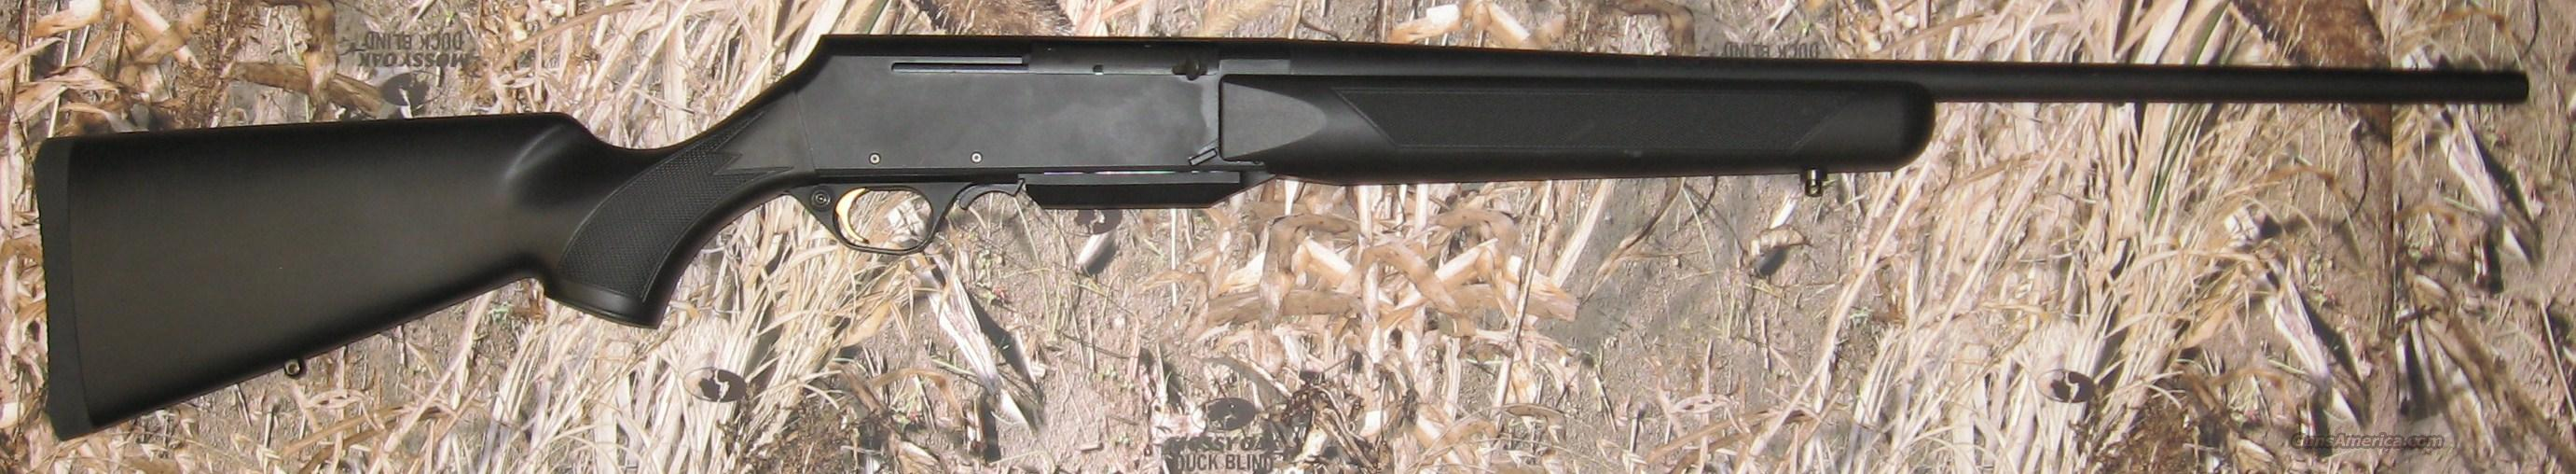 Browning BAR Short TRAC  Factory Test Fired Only  Guns > Rifles > Browning Rifles > Semi Auto > Hunting